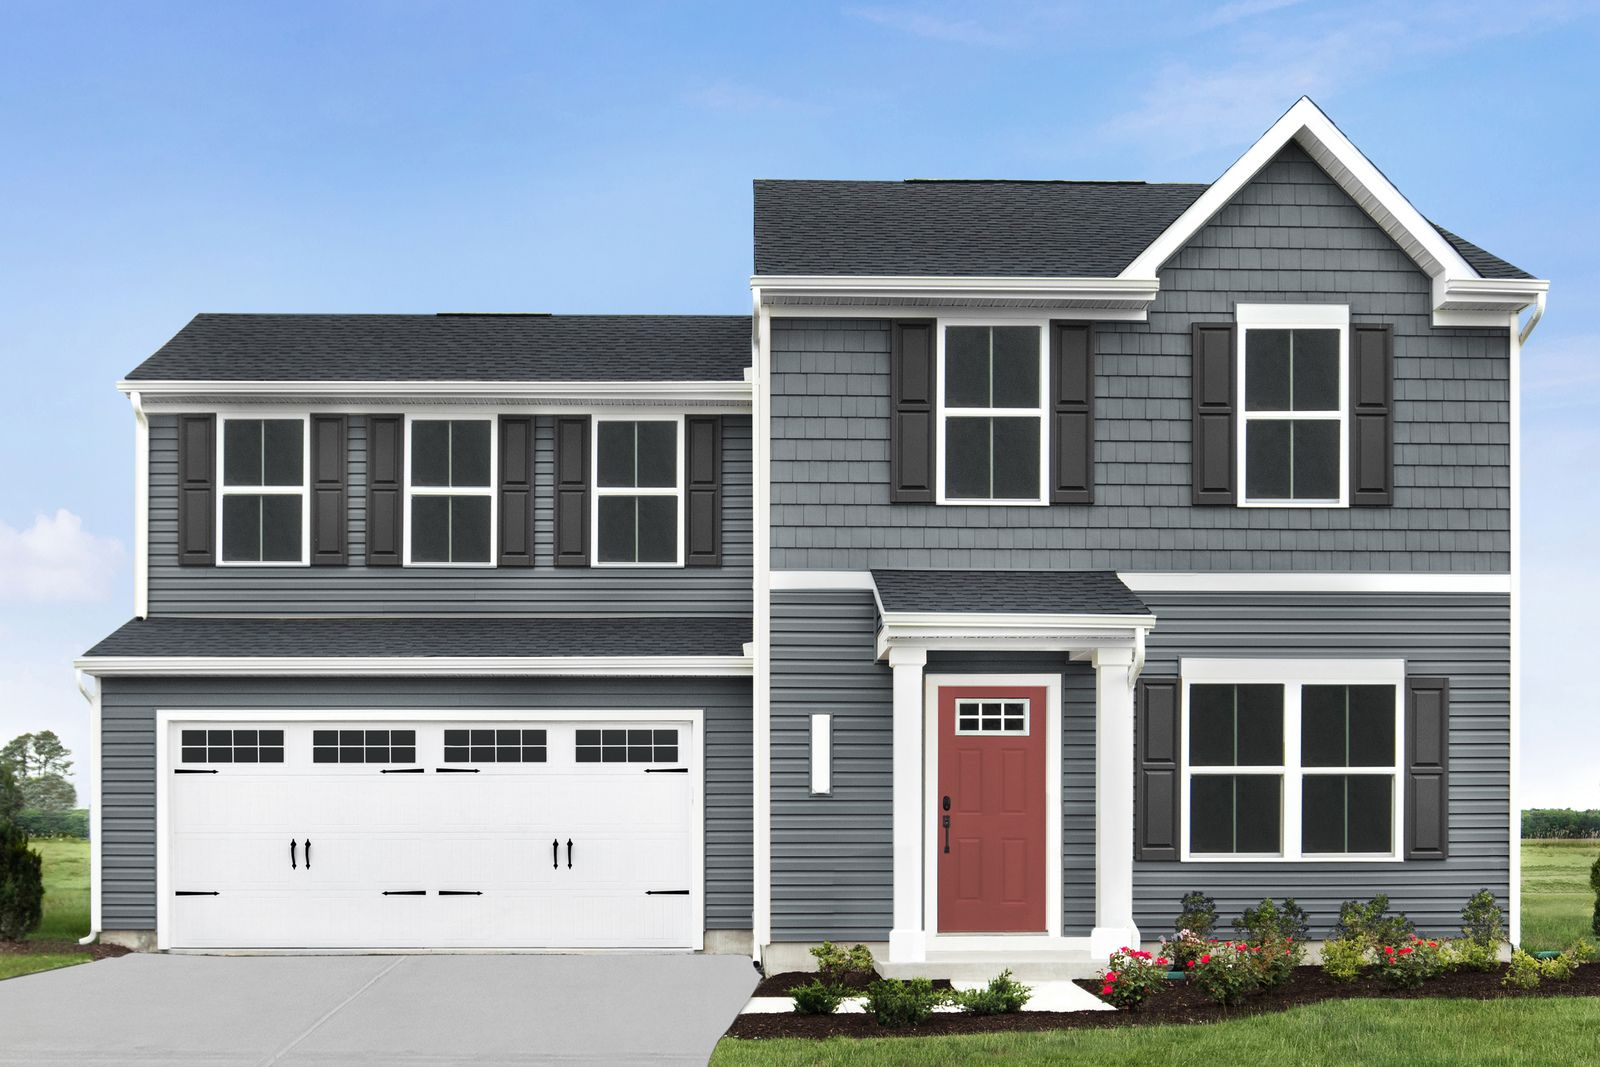 Welcome Home to Regatta at Light's Hill:The lowest price single family homes in Cincinnati with 2-car garages, slab and basement options, and included appliances only 20 mi from Downtown.Schedule your visit today!